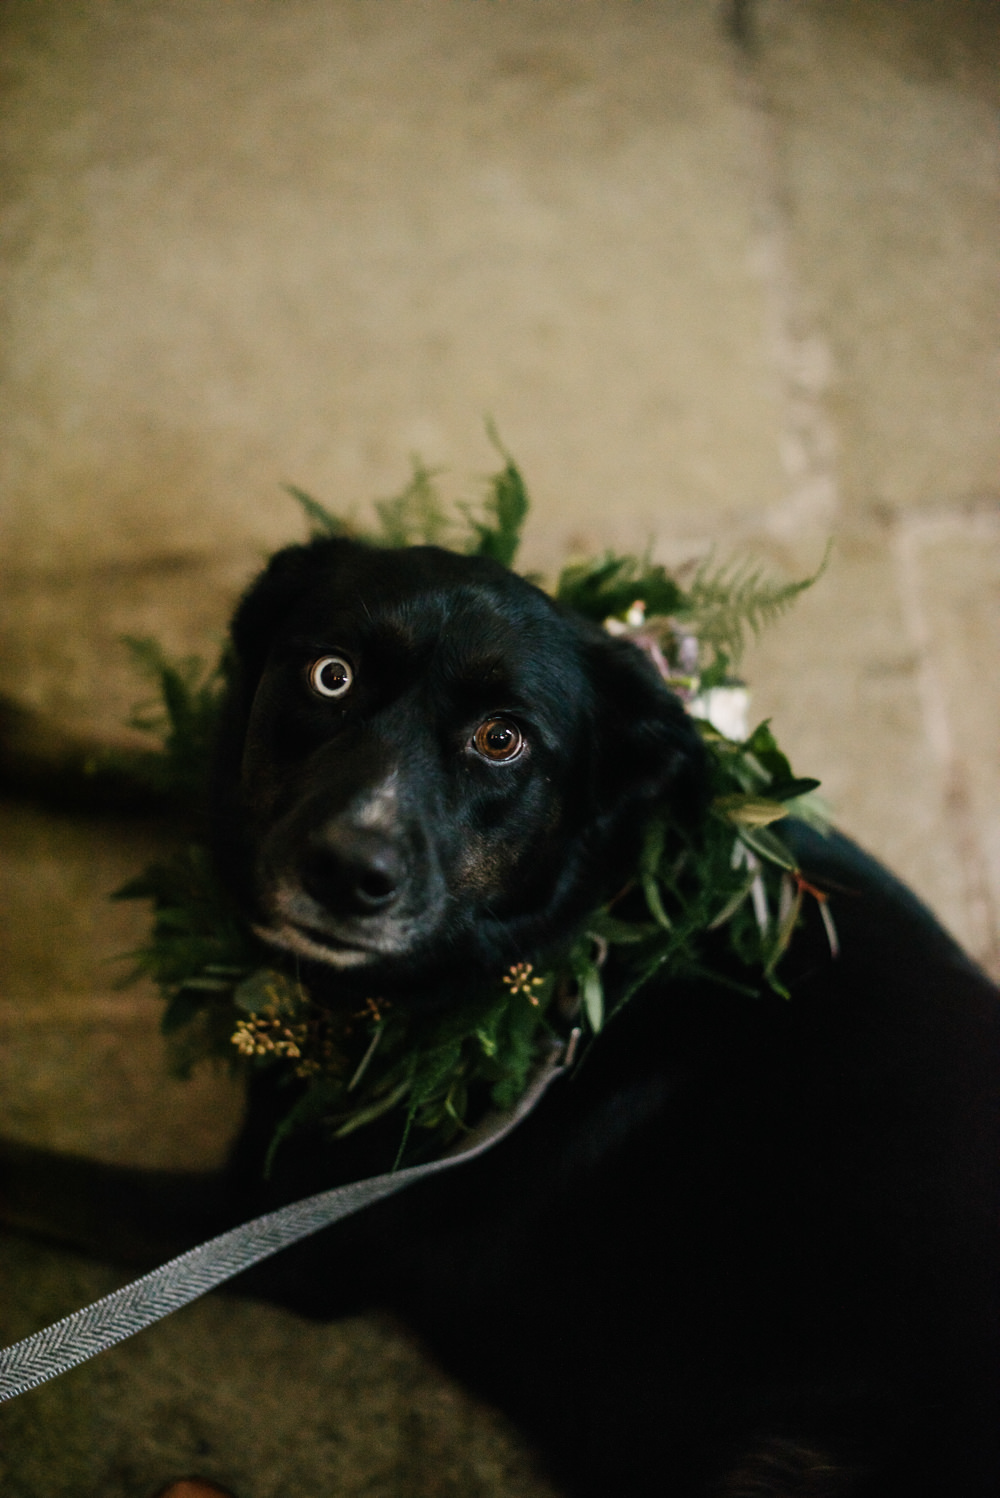 Pet Dog at Wedding Garland Foliage Orange Tree House Wedding Winter You Them Us Photography